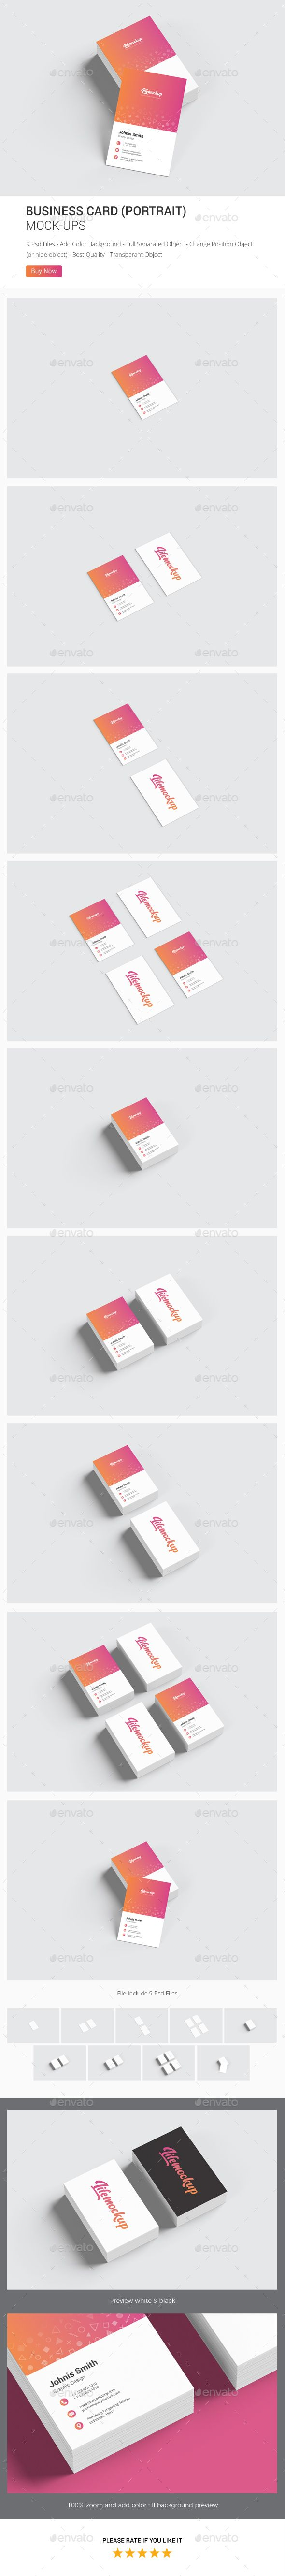 Business Card Portrait Mockup Mockup Business Cards And Business